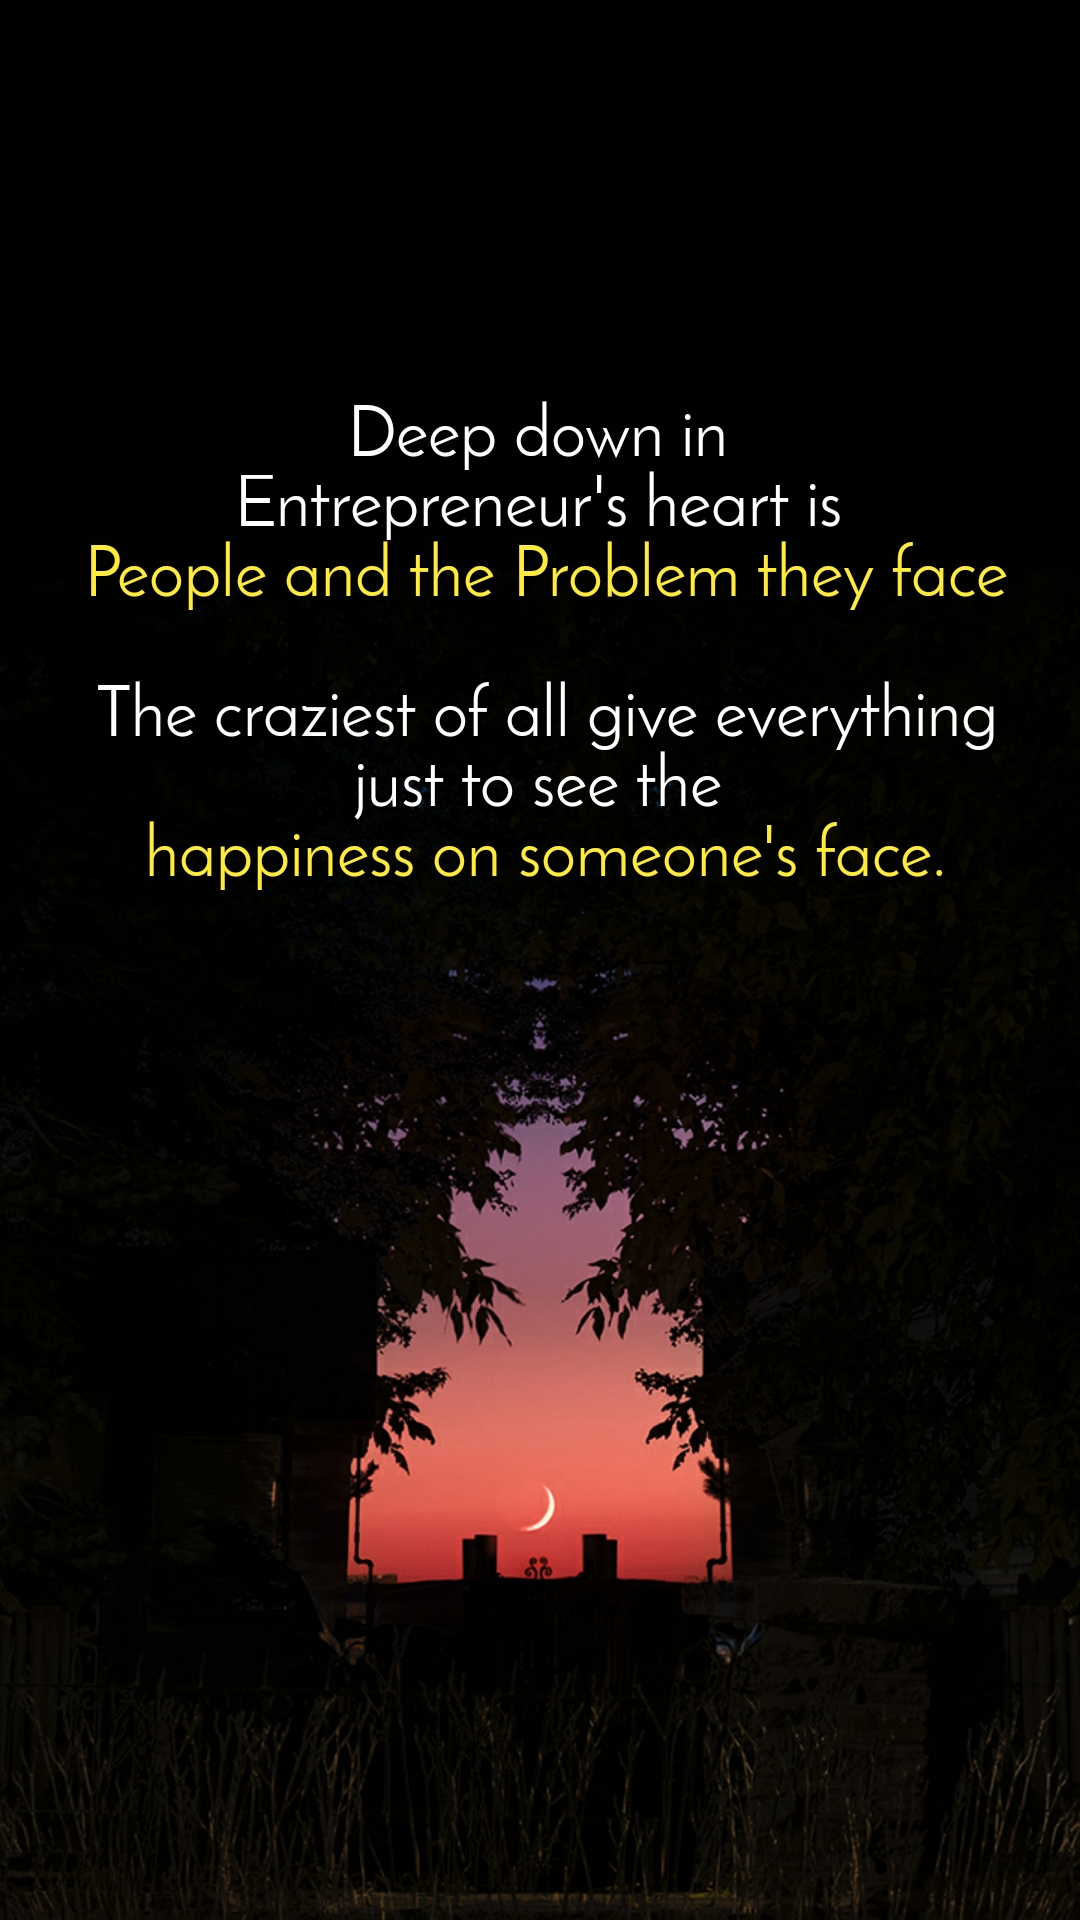 Deep down in  Entrepreneur's heart is  People and the Problem they face  The craziest of all give everything just to see the  happiness on someone's face.